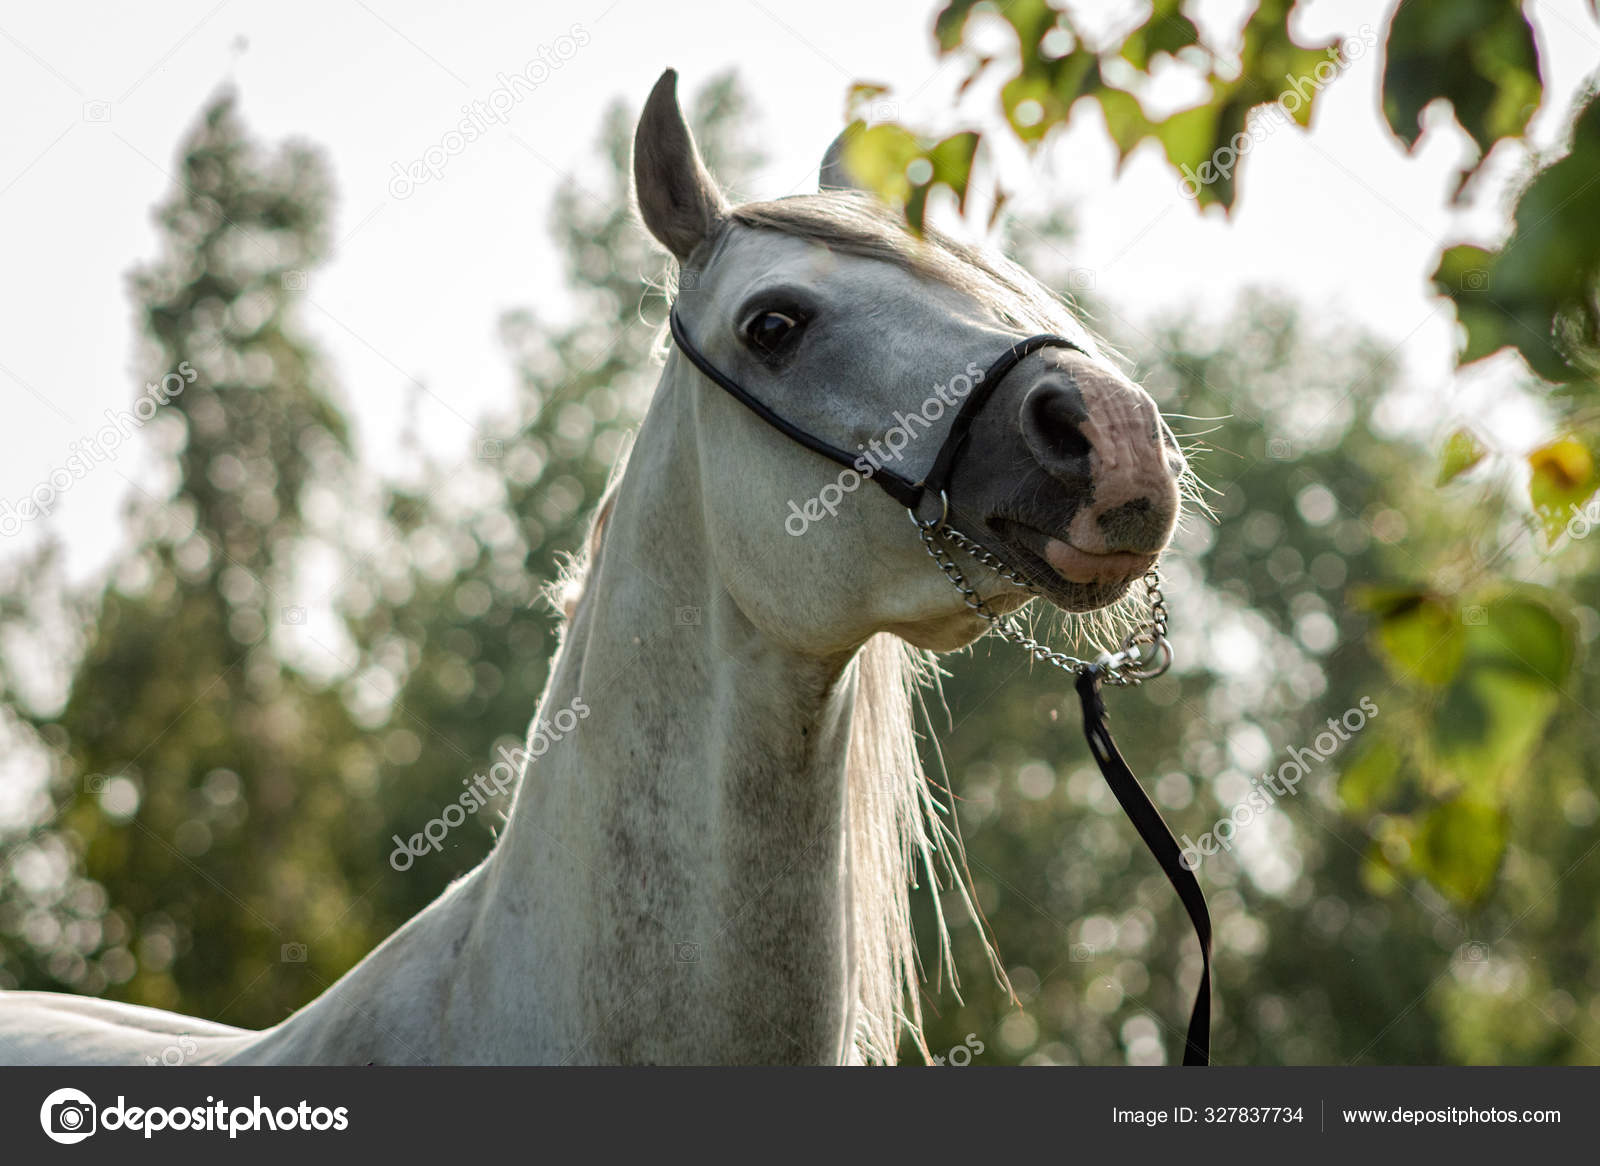 Grey Purebred Arabian Horse Posing Show Halter Summer Outdoors Anima Stock Photo C Aurency 327837734